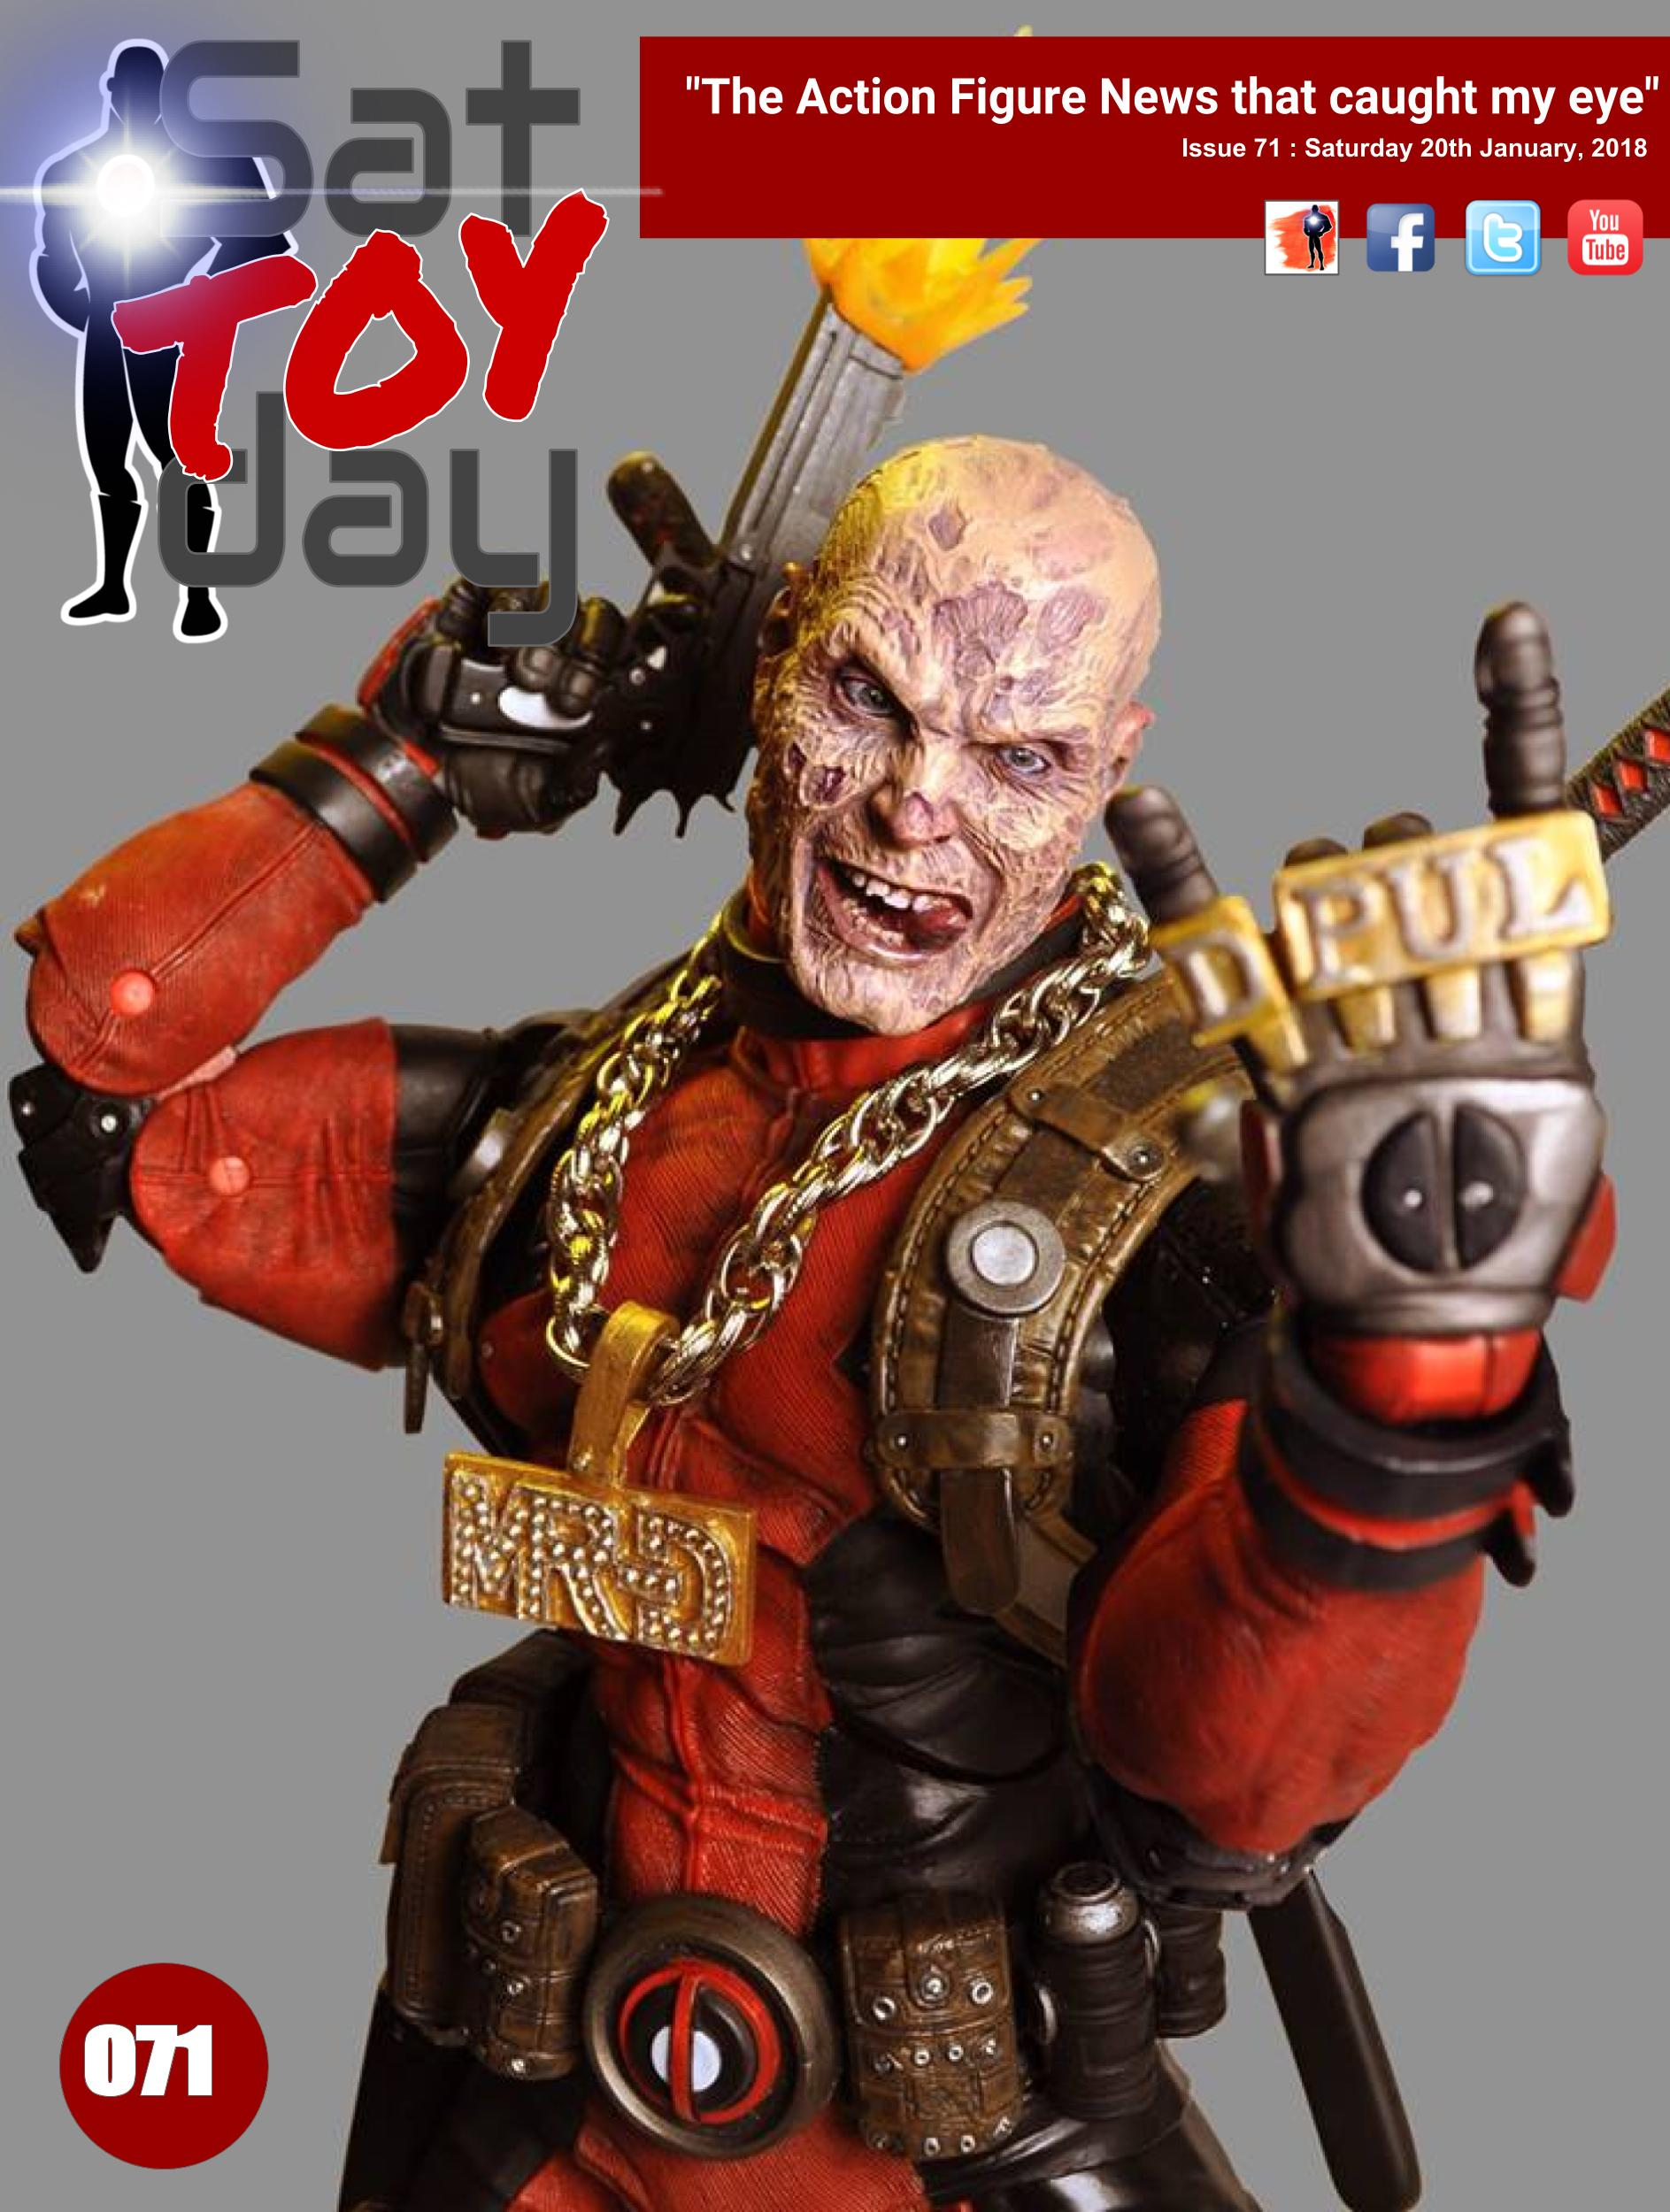 071 Action Figure Sat-TOY-day News, 20th January 2018